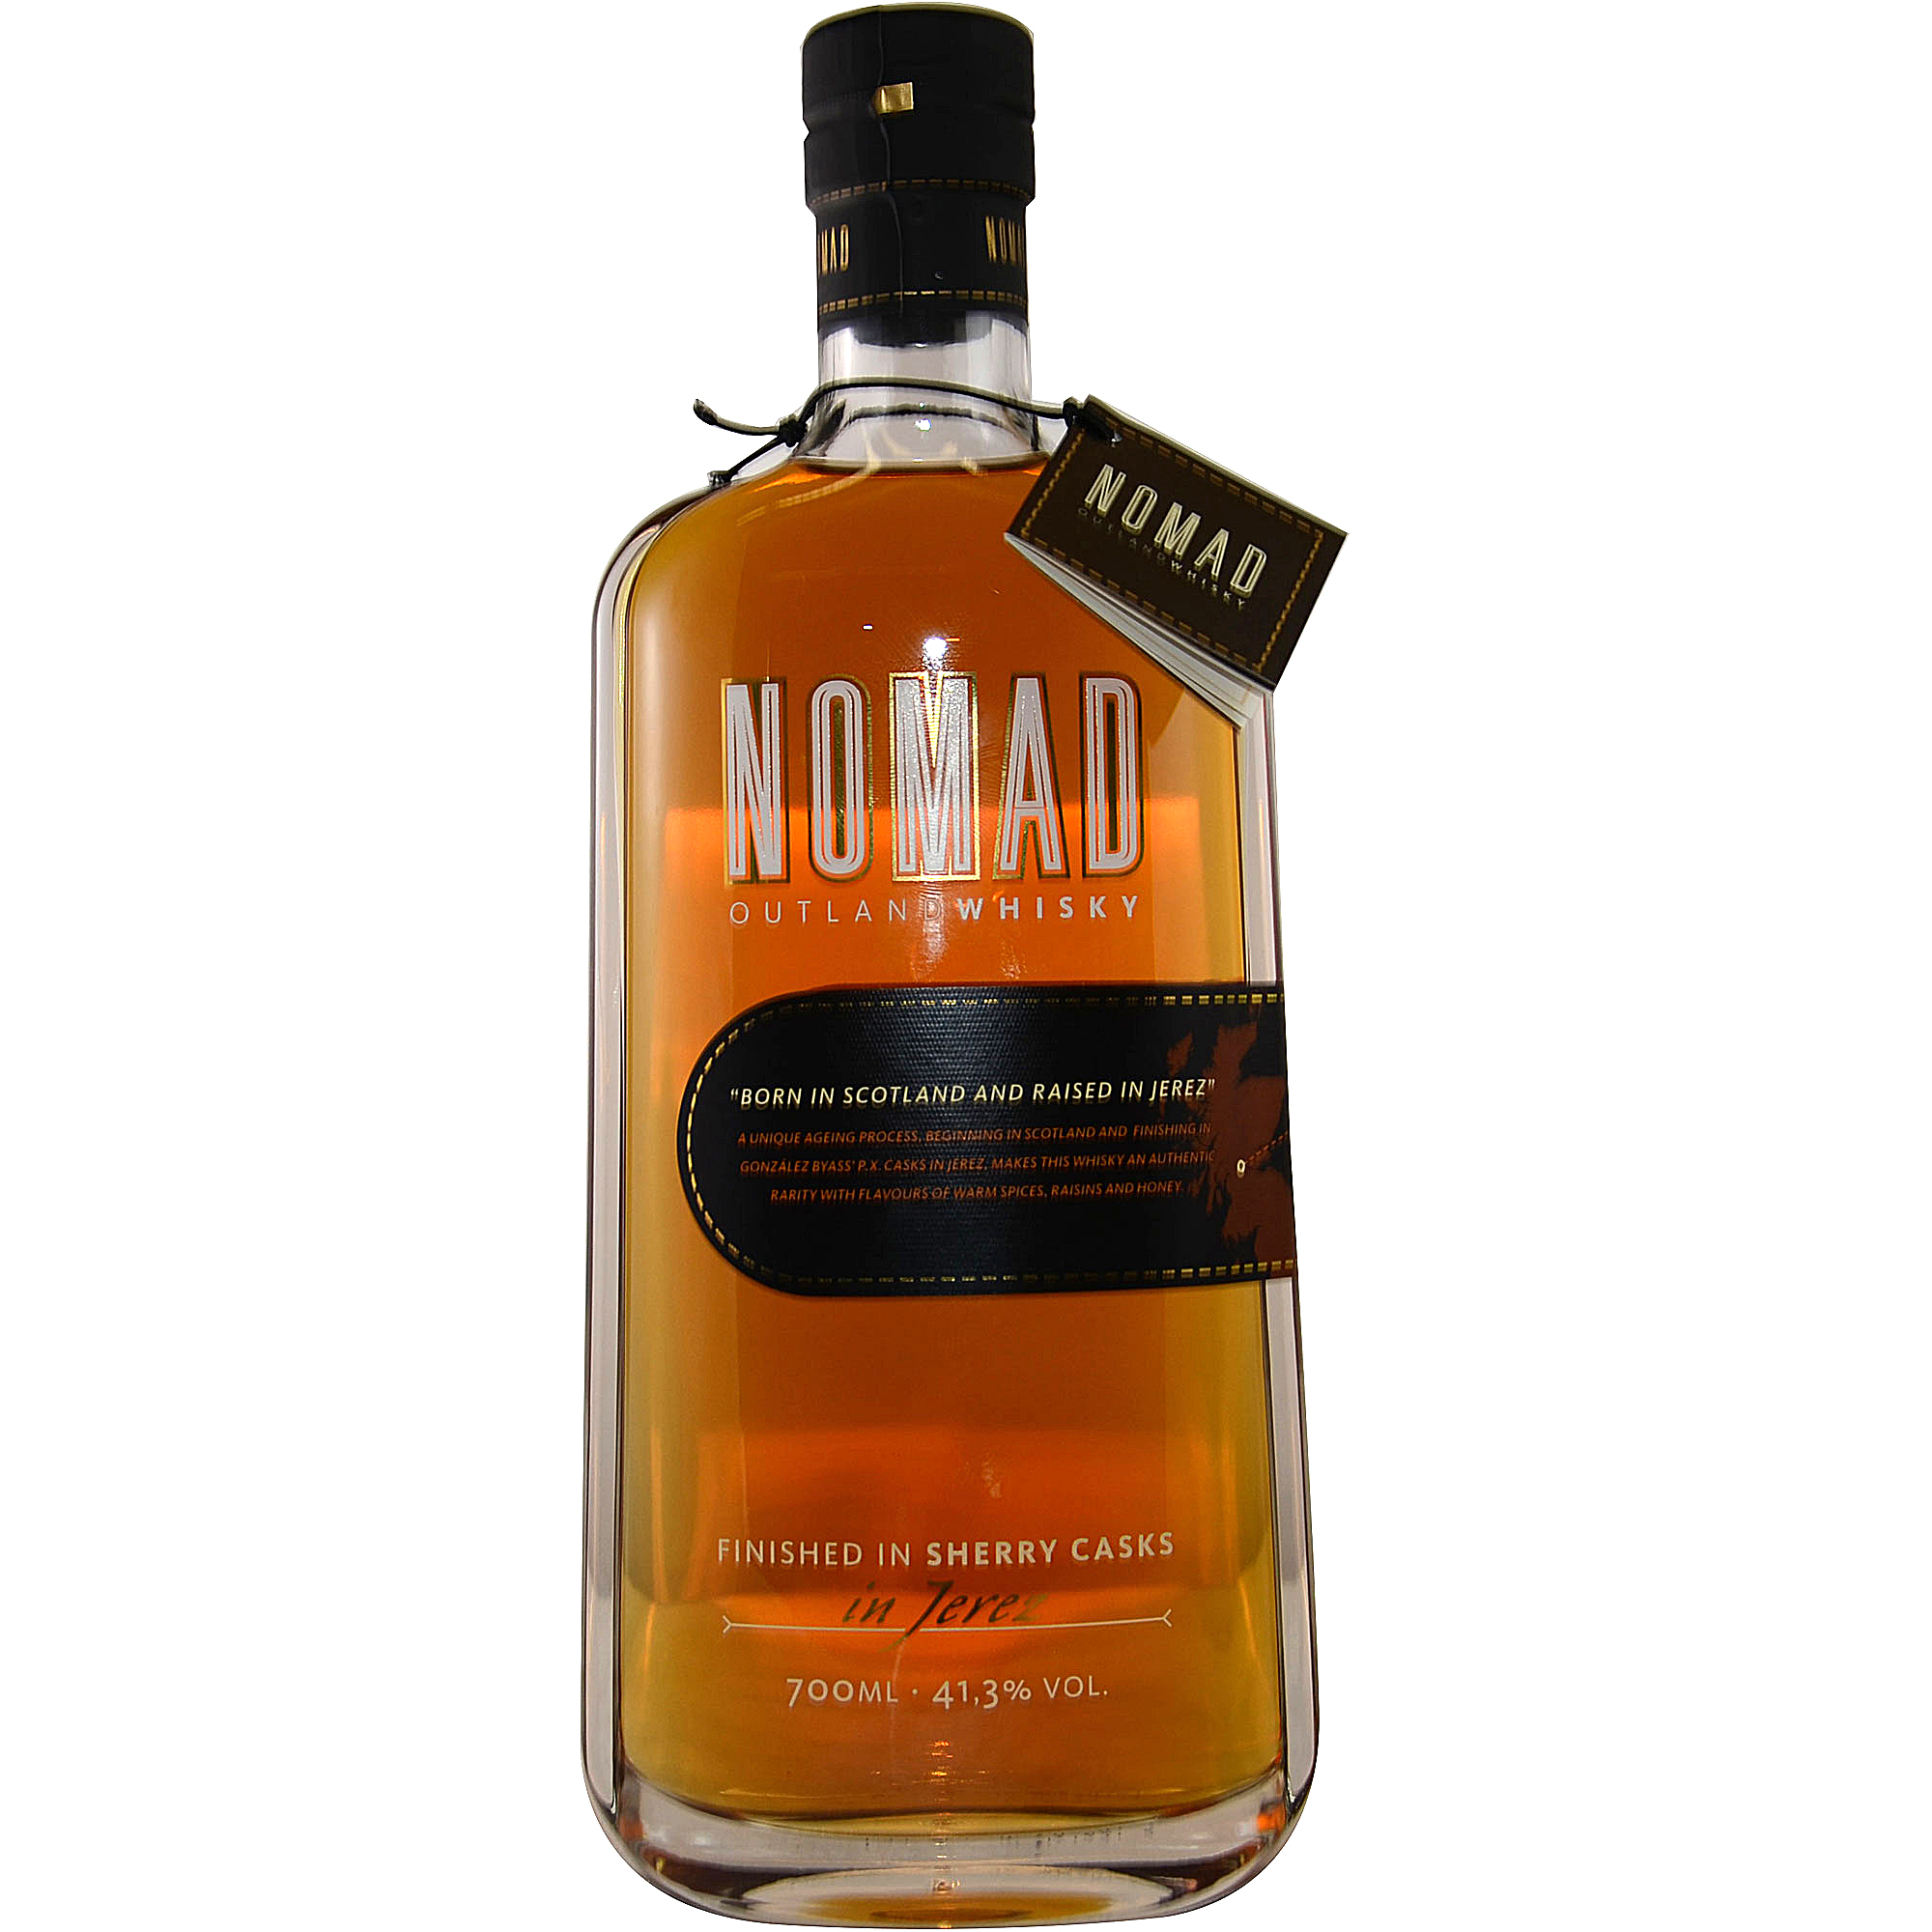 NOMAD Outland Whisky in Geschenkverpackung hier kaufen! | whic.de